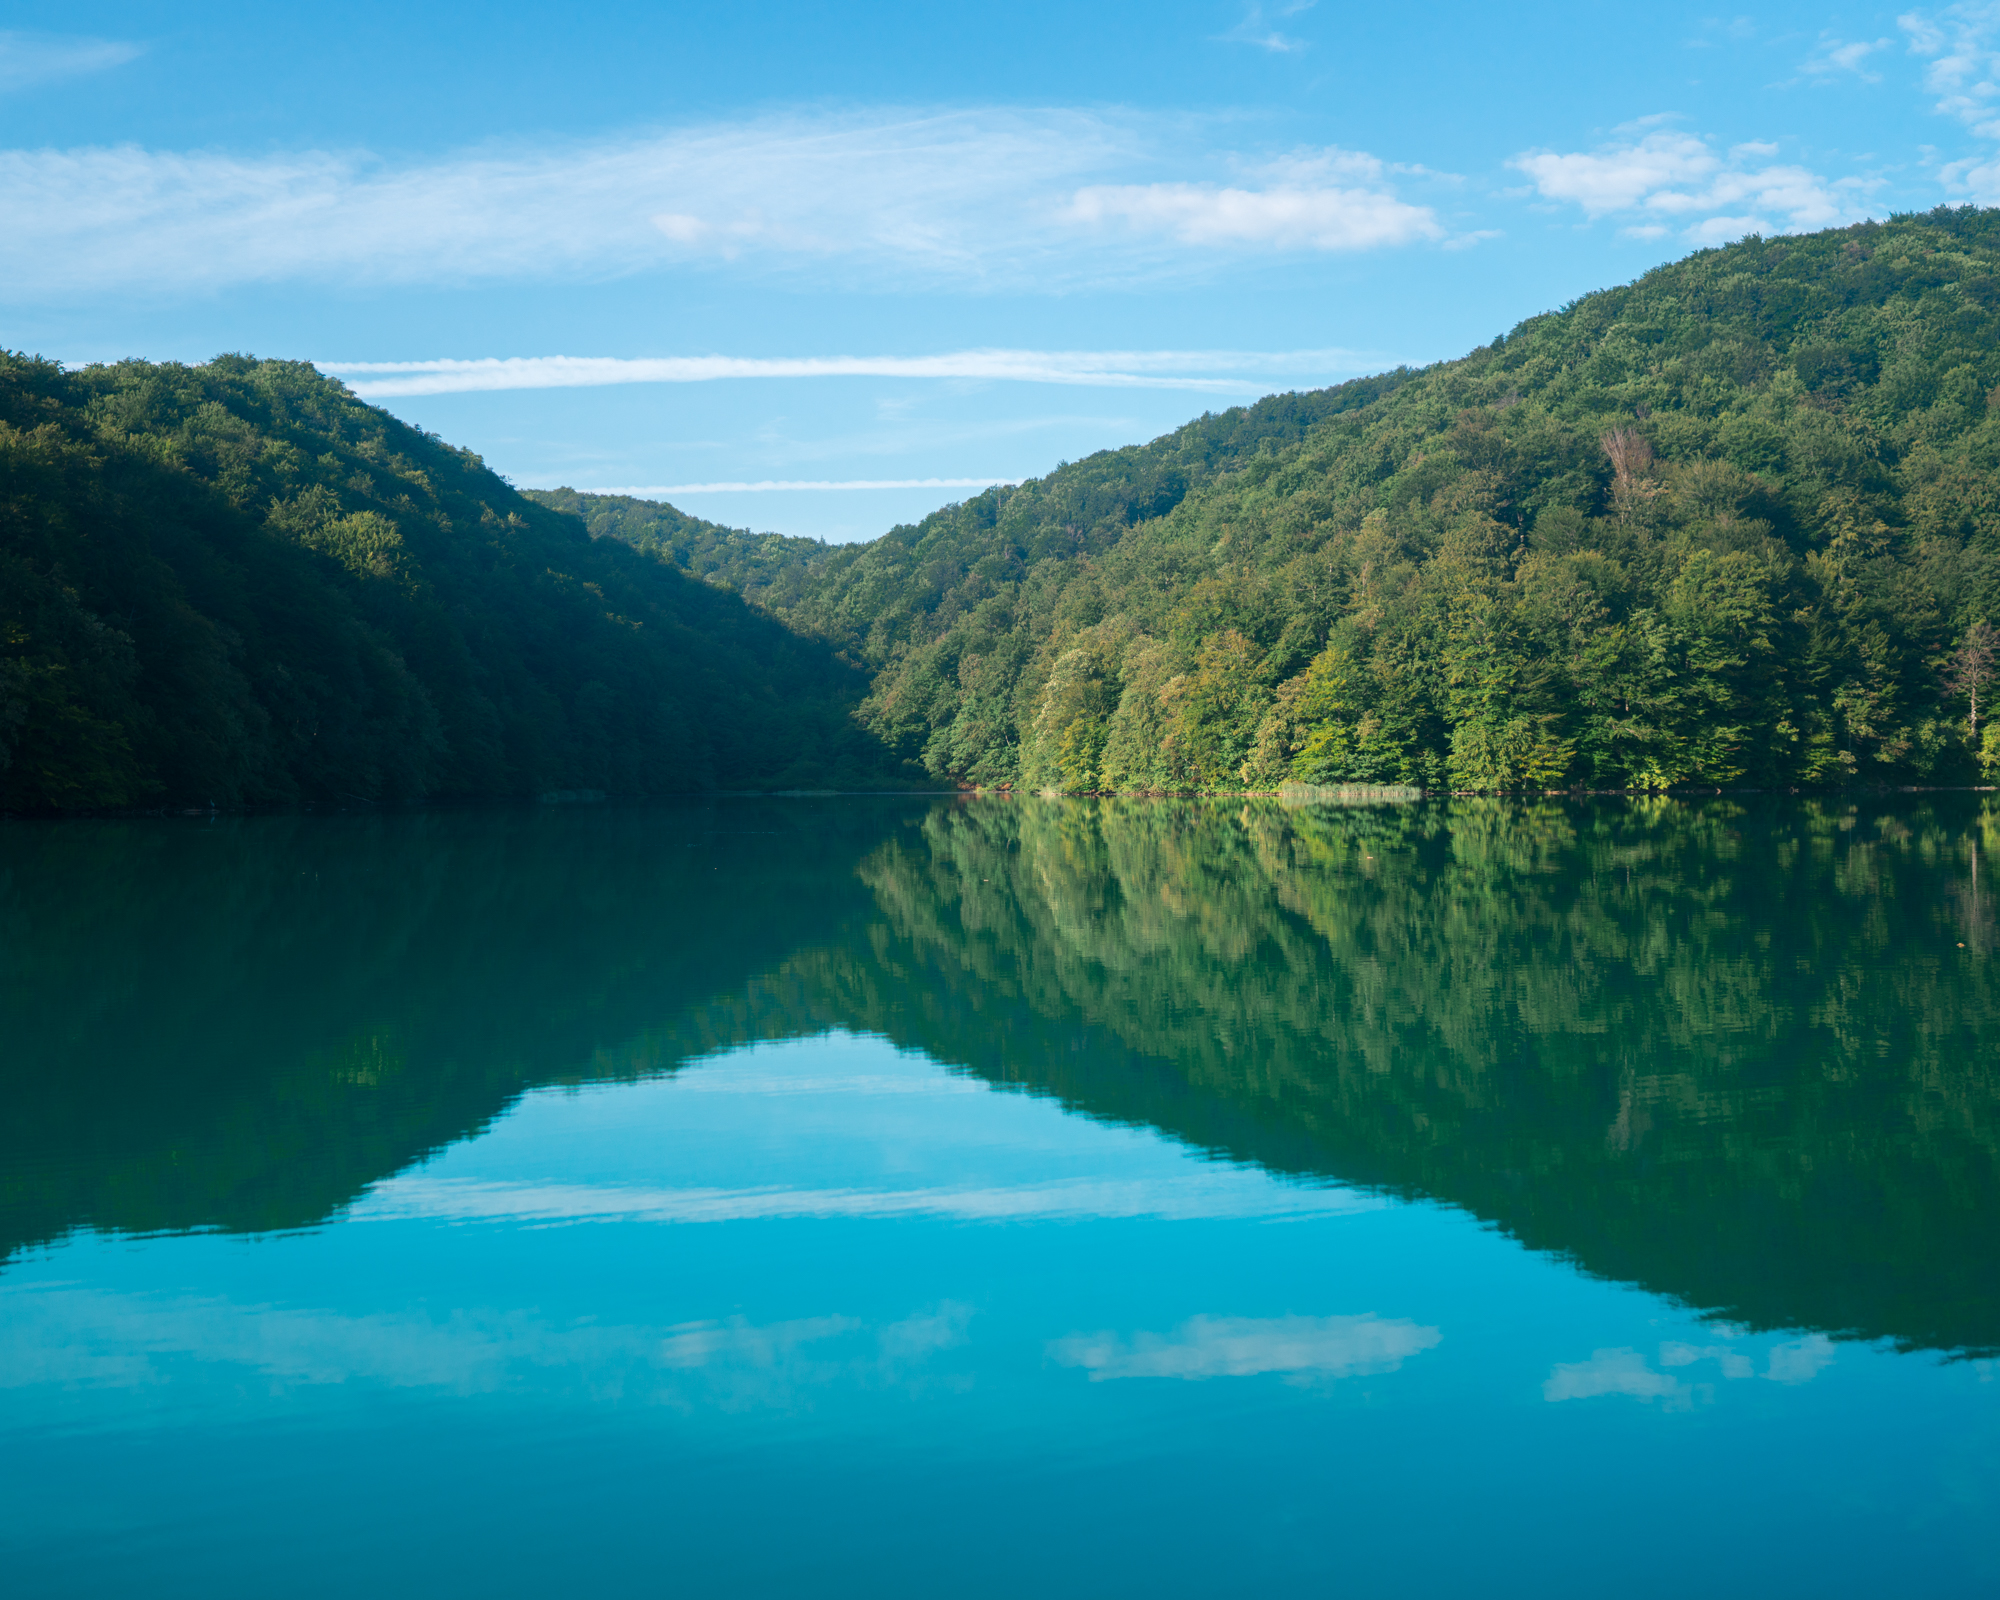 When to visit Plitvice Lakes National Park